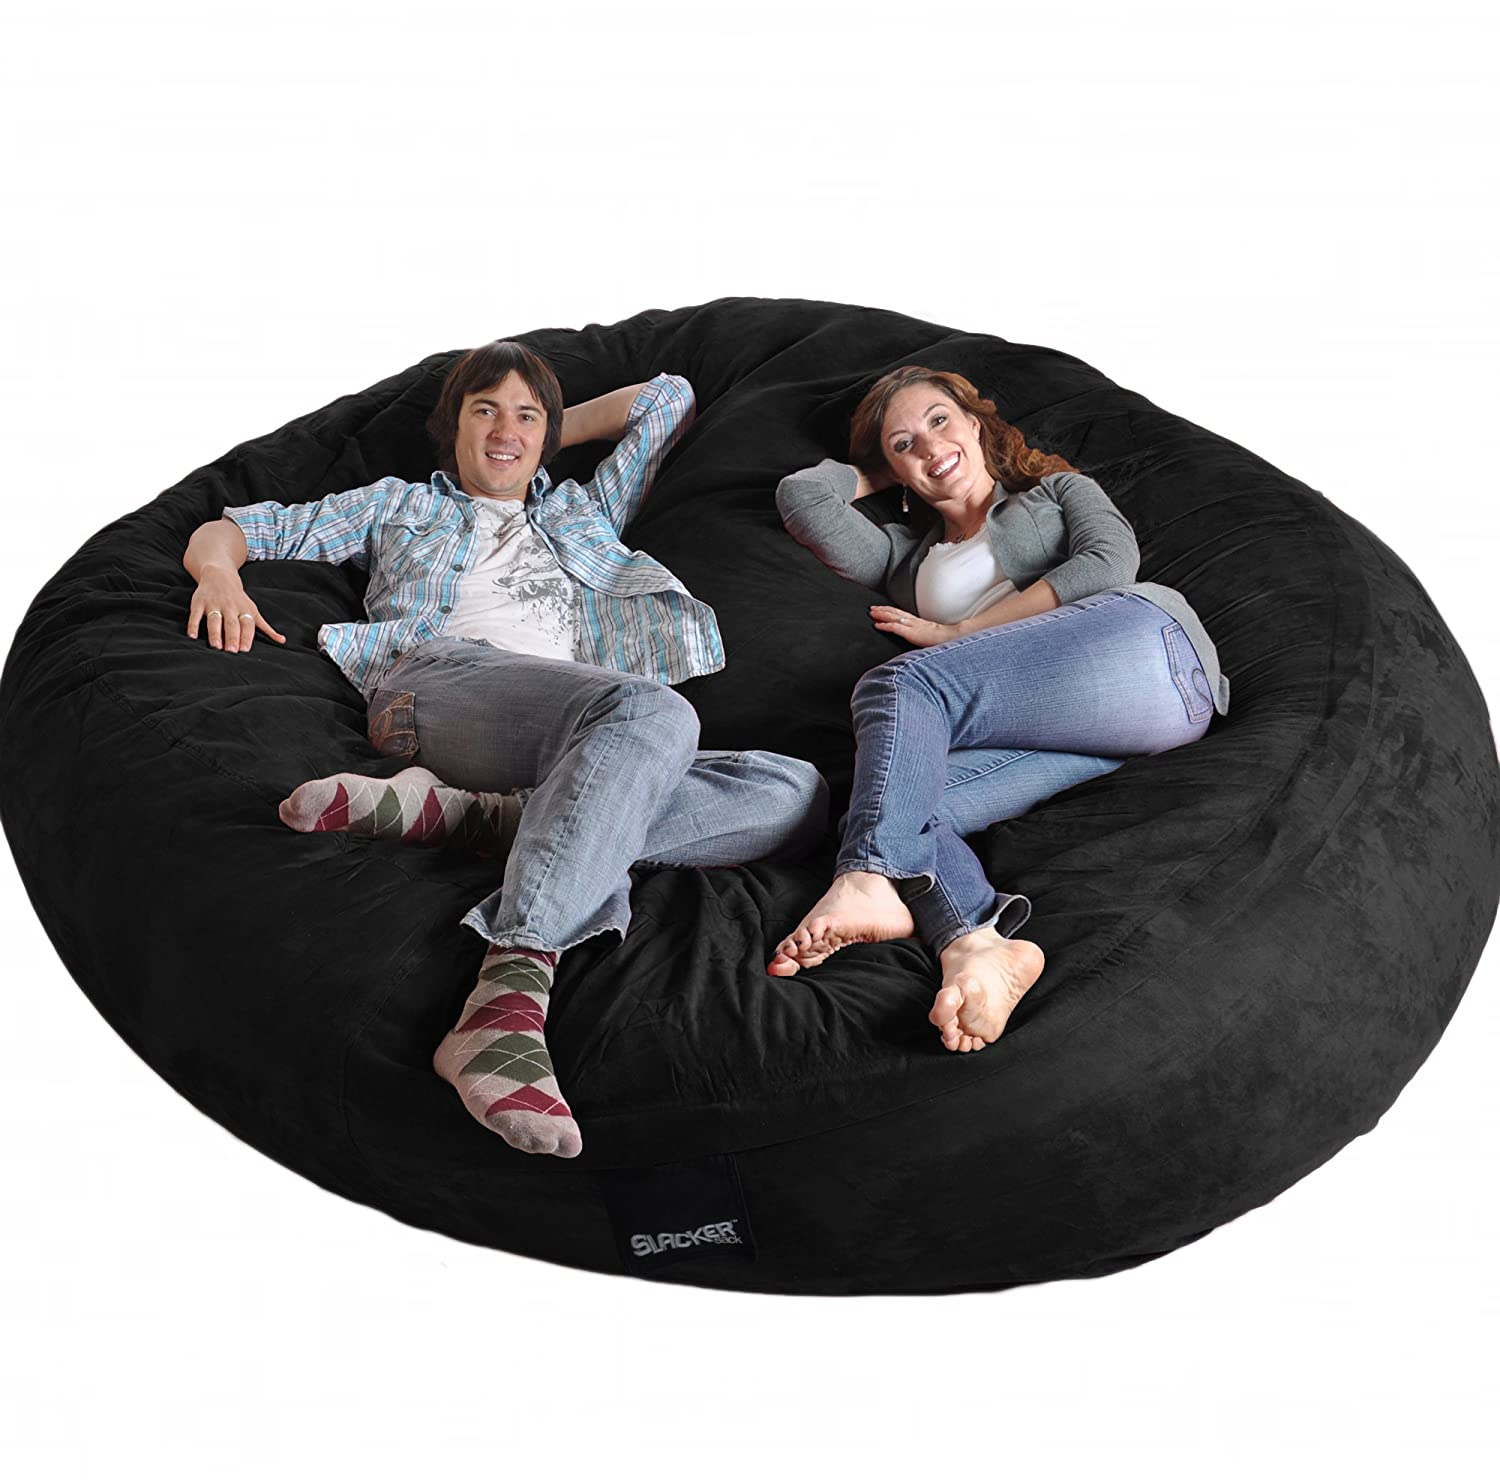 Amazon 8 Round Black SLACKER sack Biggest Foam Bean Bag